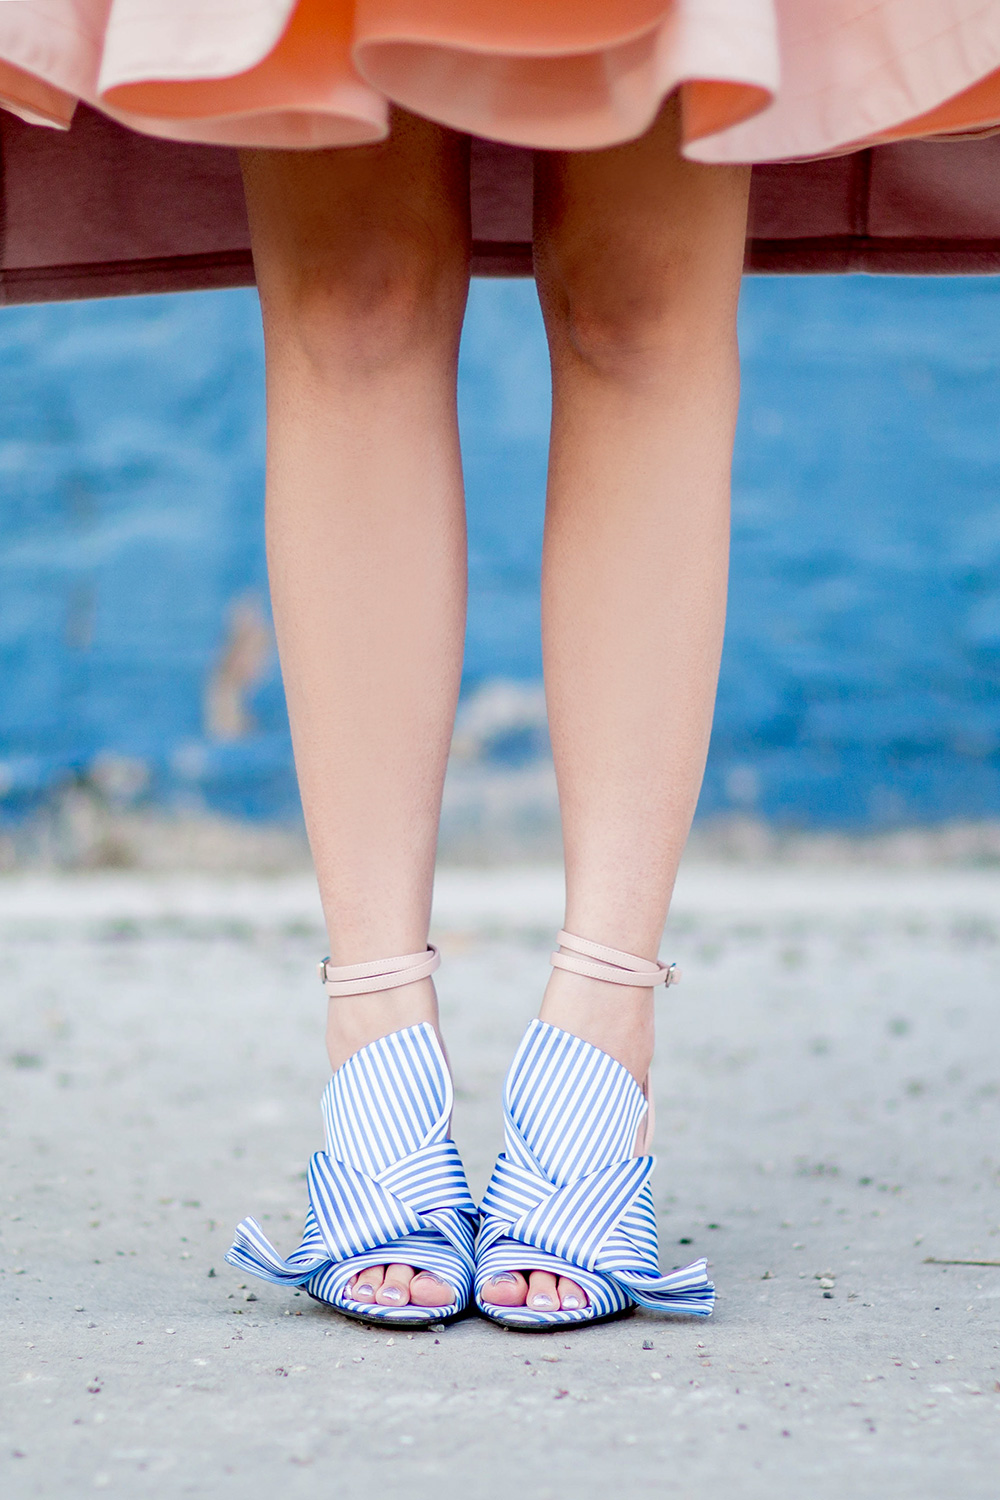 No 21 Knotted Striped Sandals